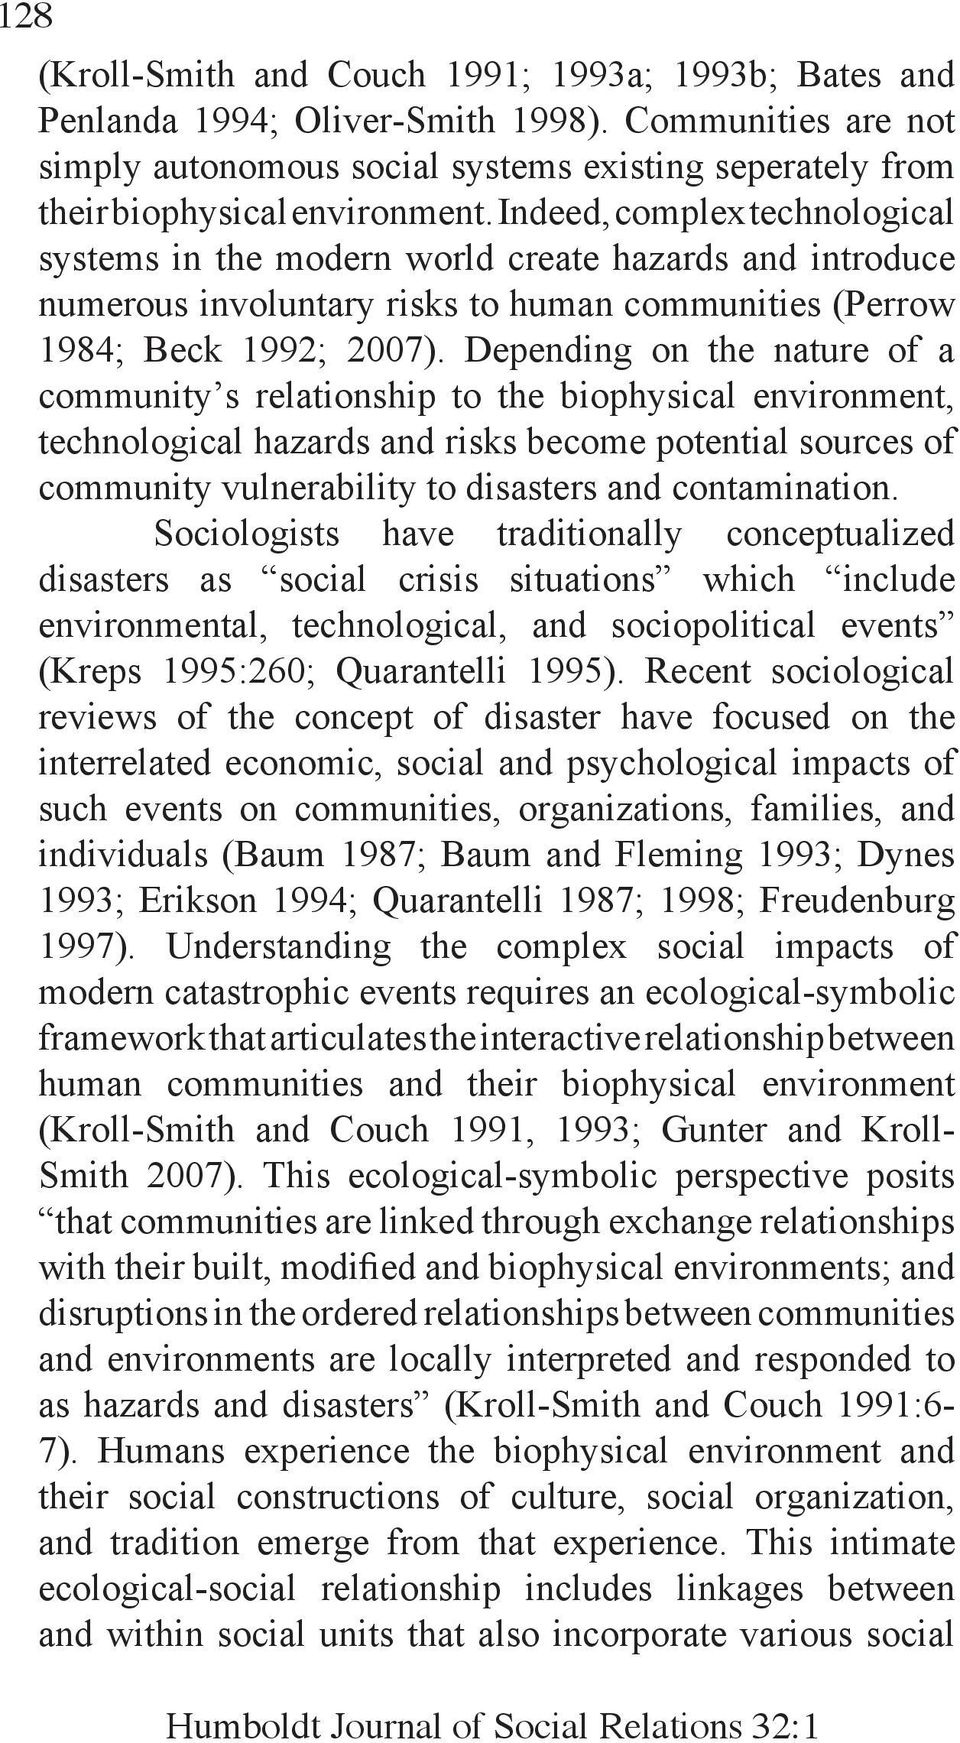 Depending on the nature of a community s relationship to the biophysical environment, technological hazards and risks become potential sources of community vulnerability to disasters and